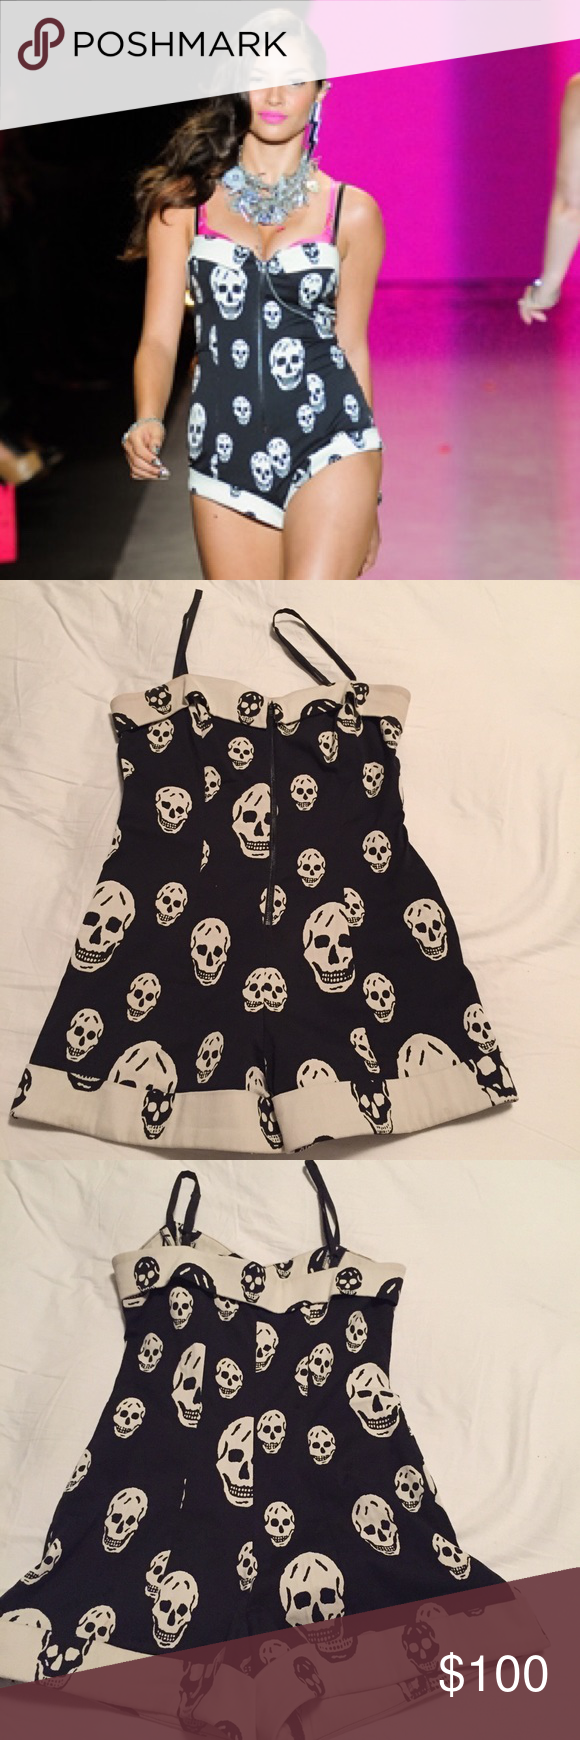 79f371b3bb60 Betsey Johnson Skull Romper WOOHOO!! This is the BEST ROMPER EVER! Black  and white RUNWAY skull romper from Betsey Johnson. Zipper front